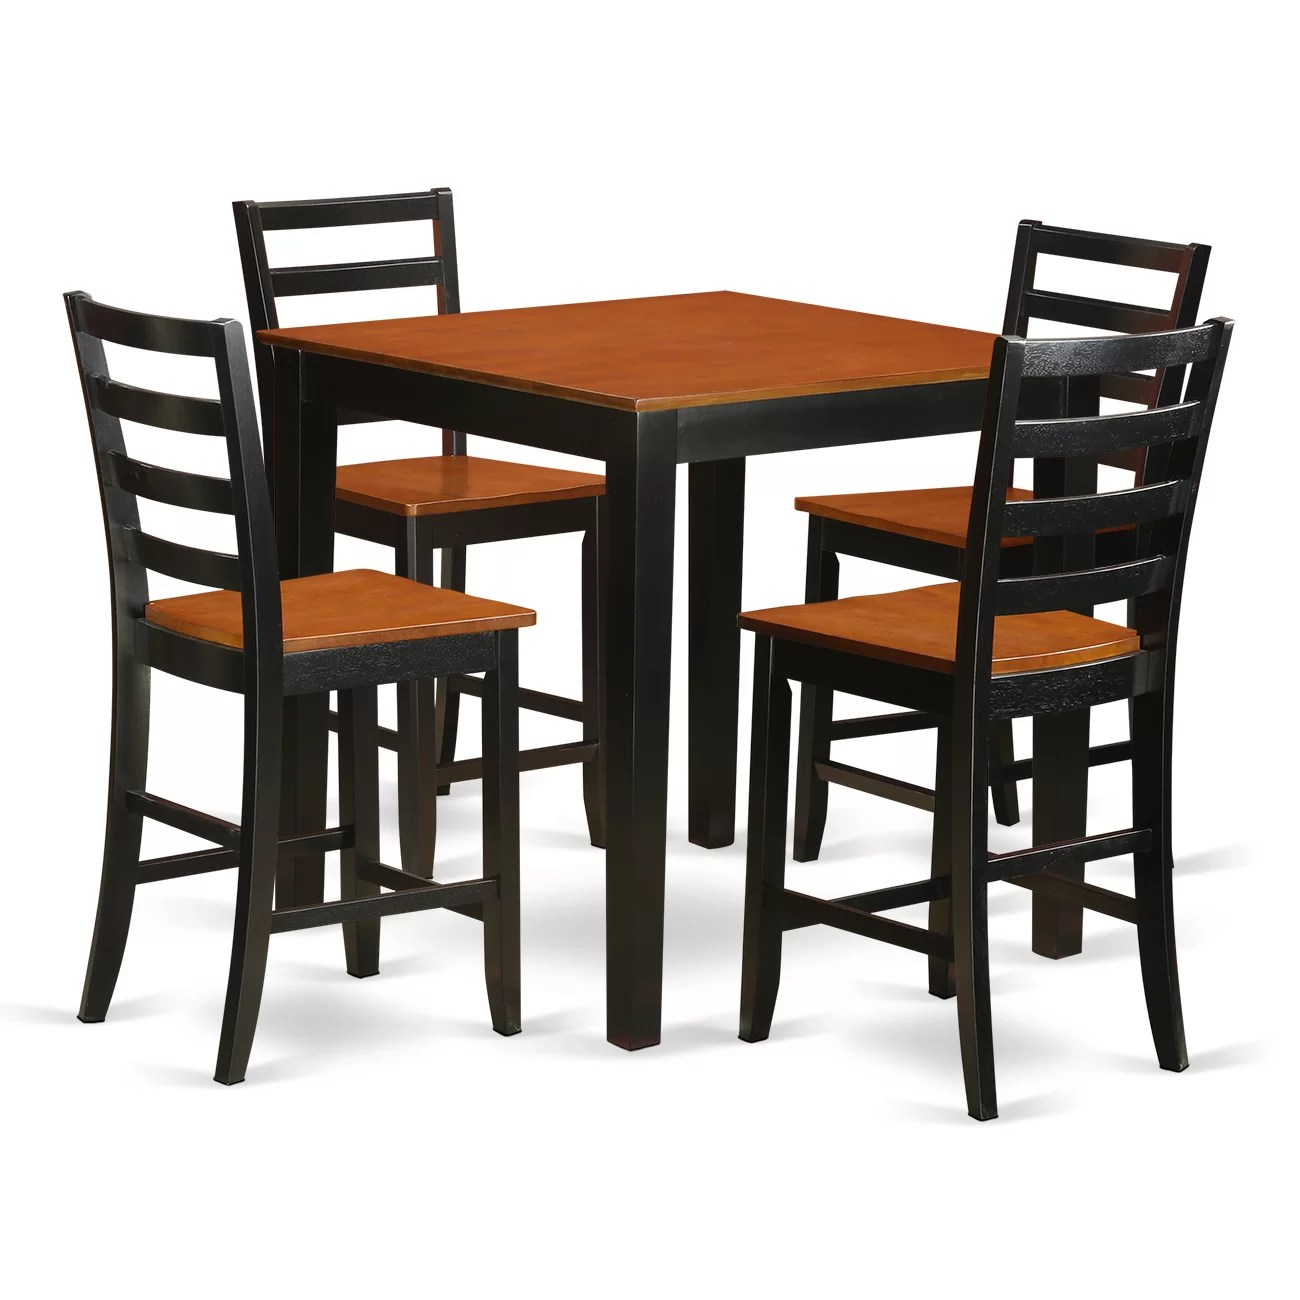 Bar Height Kitchen Table And Chairs Wooden Importers 5 Piece Counter Height Pub Table Set